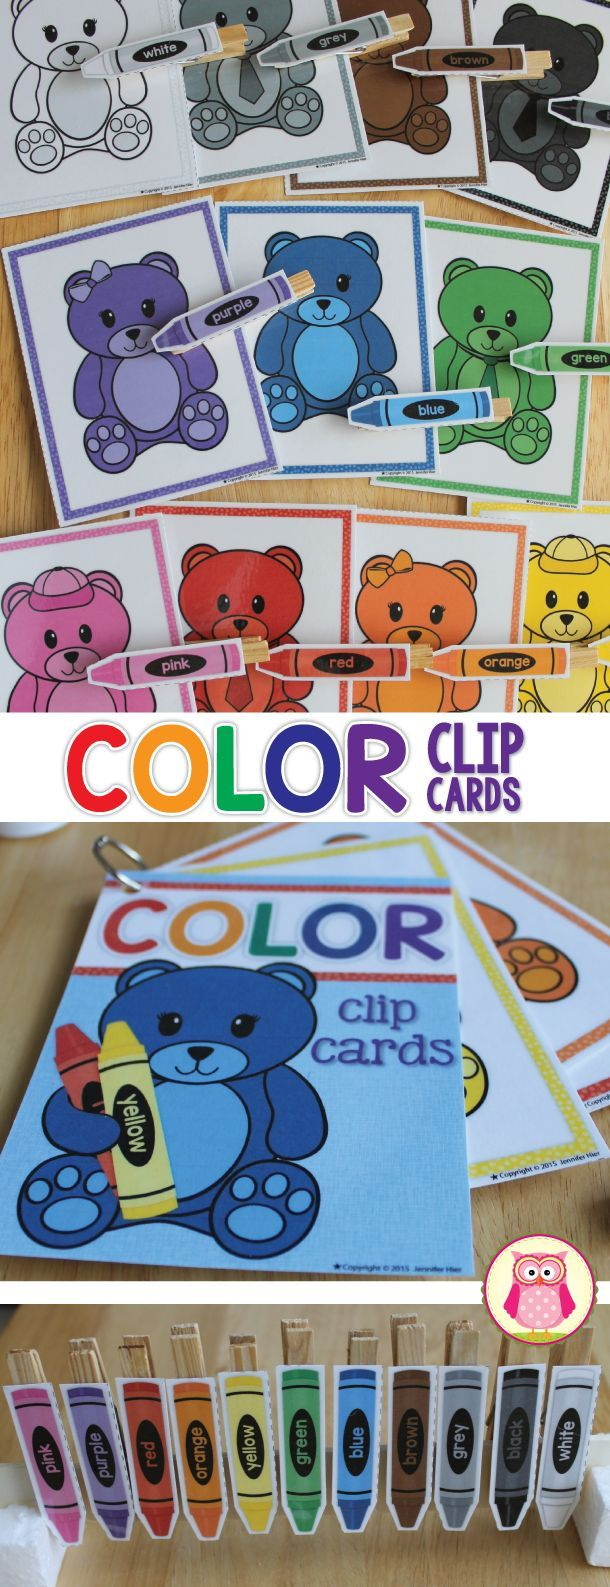 Printable color matching games for preschoolers - Color Matching Bears Bear Color Match Clip Cards For Preschool And Ece